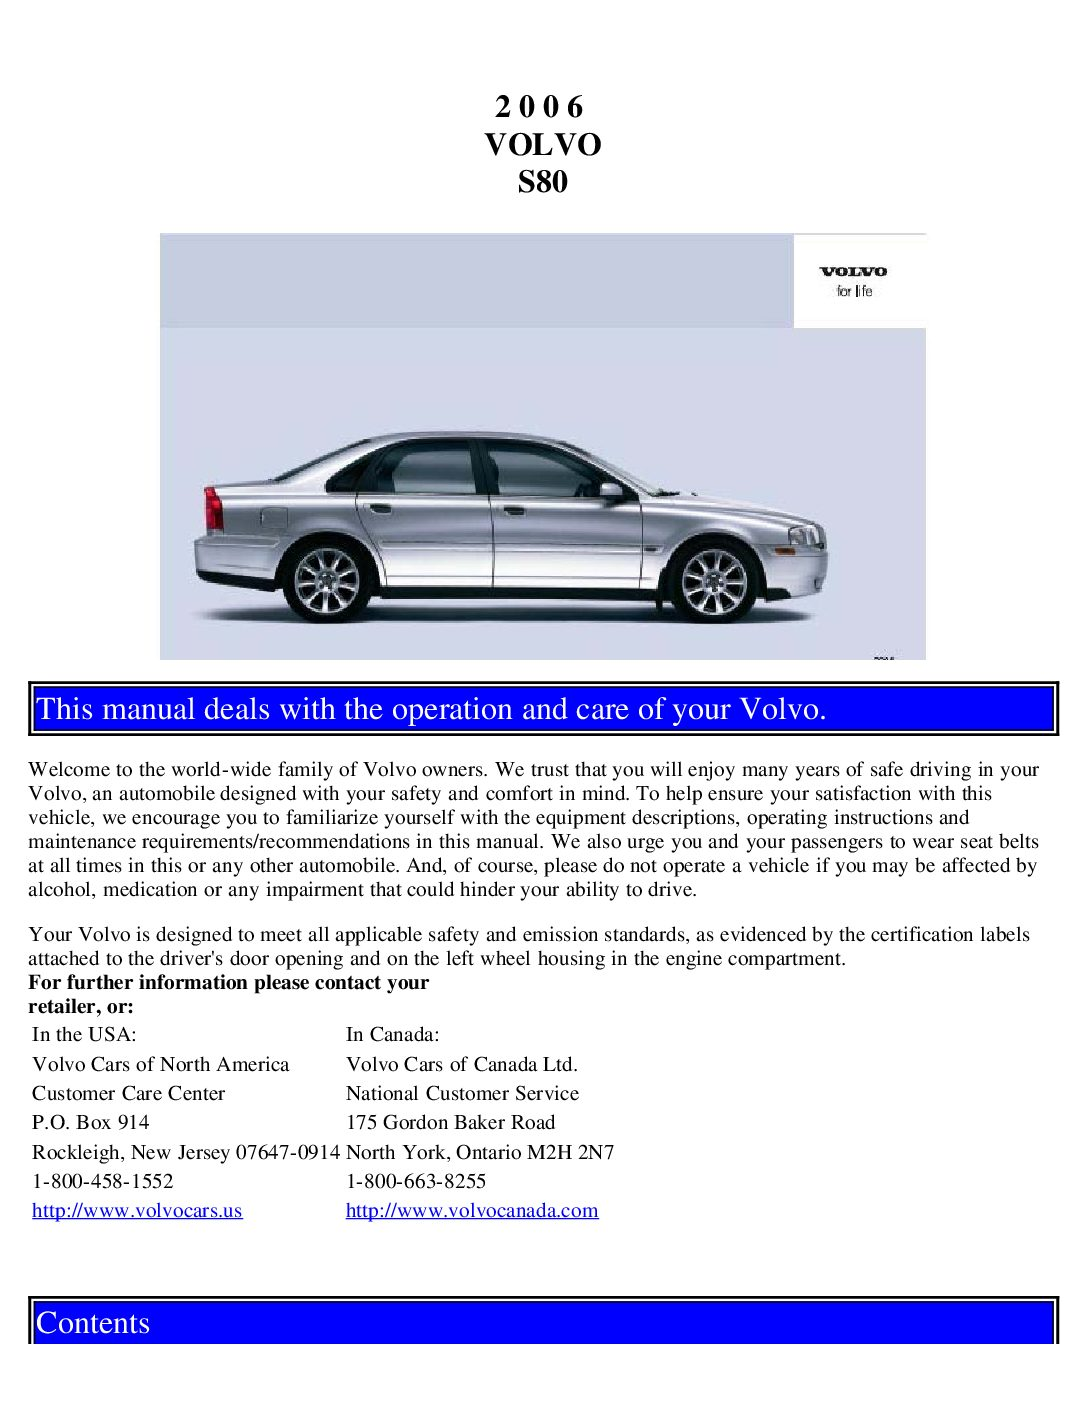 2006 volvo s80 Owners Manual | Just Give Me The Damn Manual